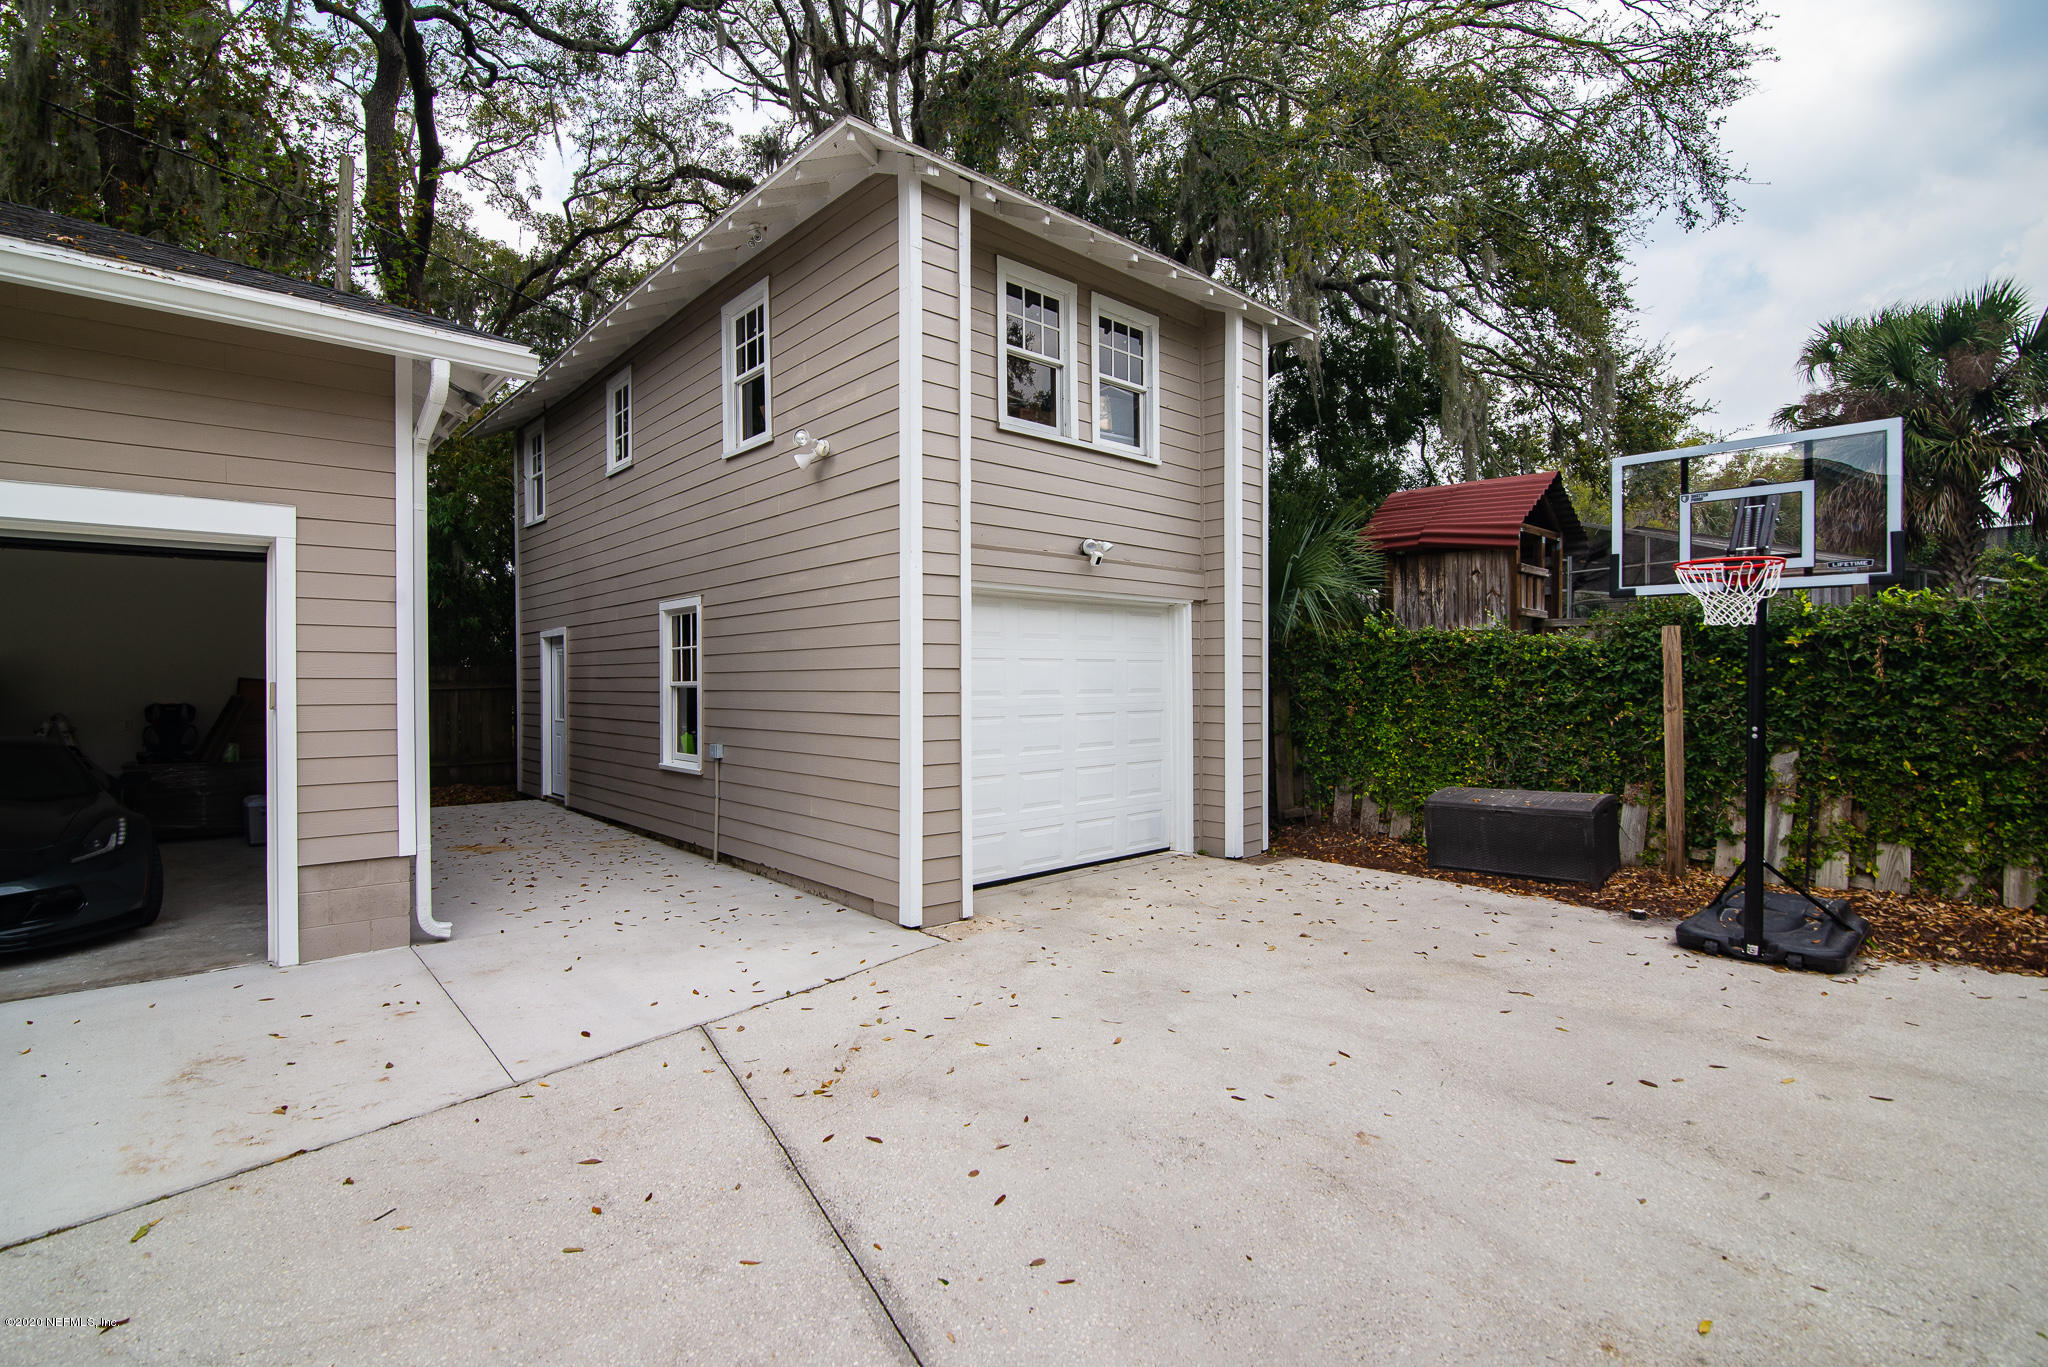 1840 MALLORY, JACKSONVILLE, FLORIDA 32205, 3 Bedrooms Bedrooms, ,2 BathroomsBathrooms,Residential,For sale,MALLORY,1052748